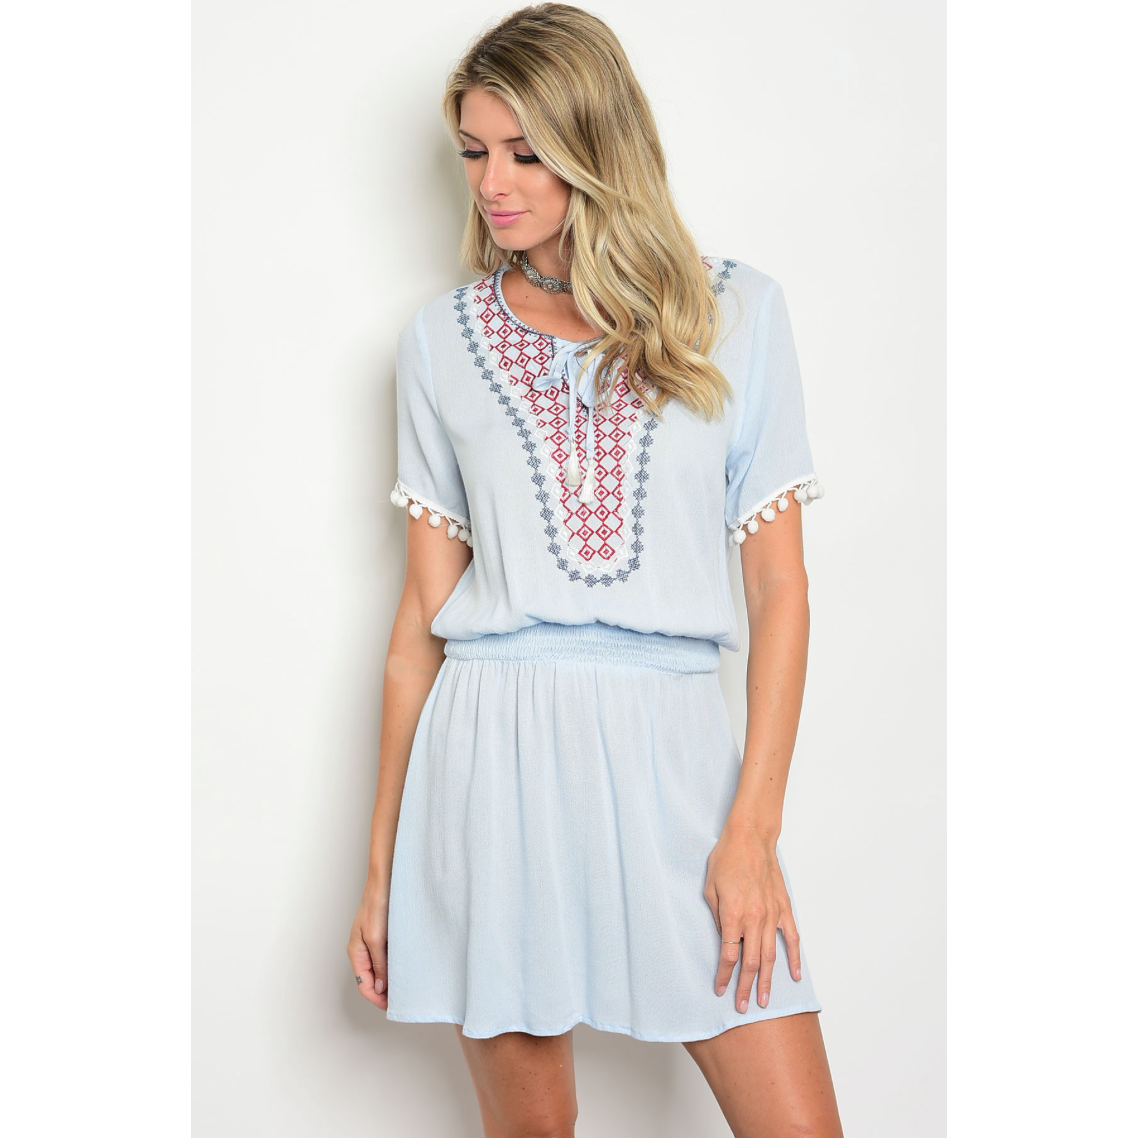 Available Pastel Blue Smocked Waist Embroidered Dress with Tie Neck